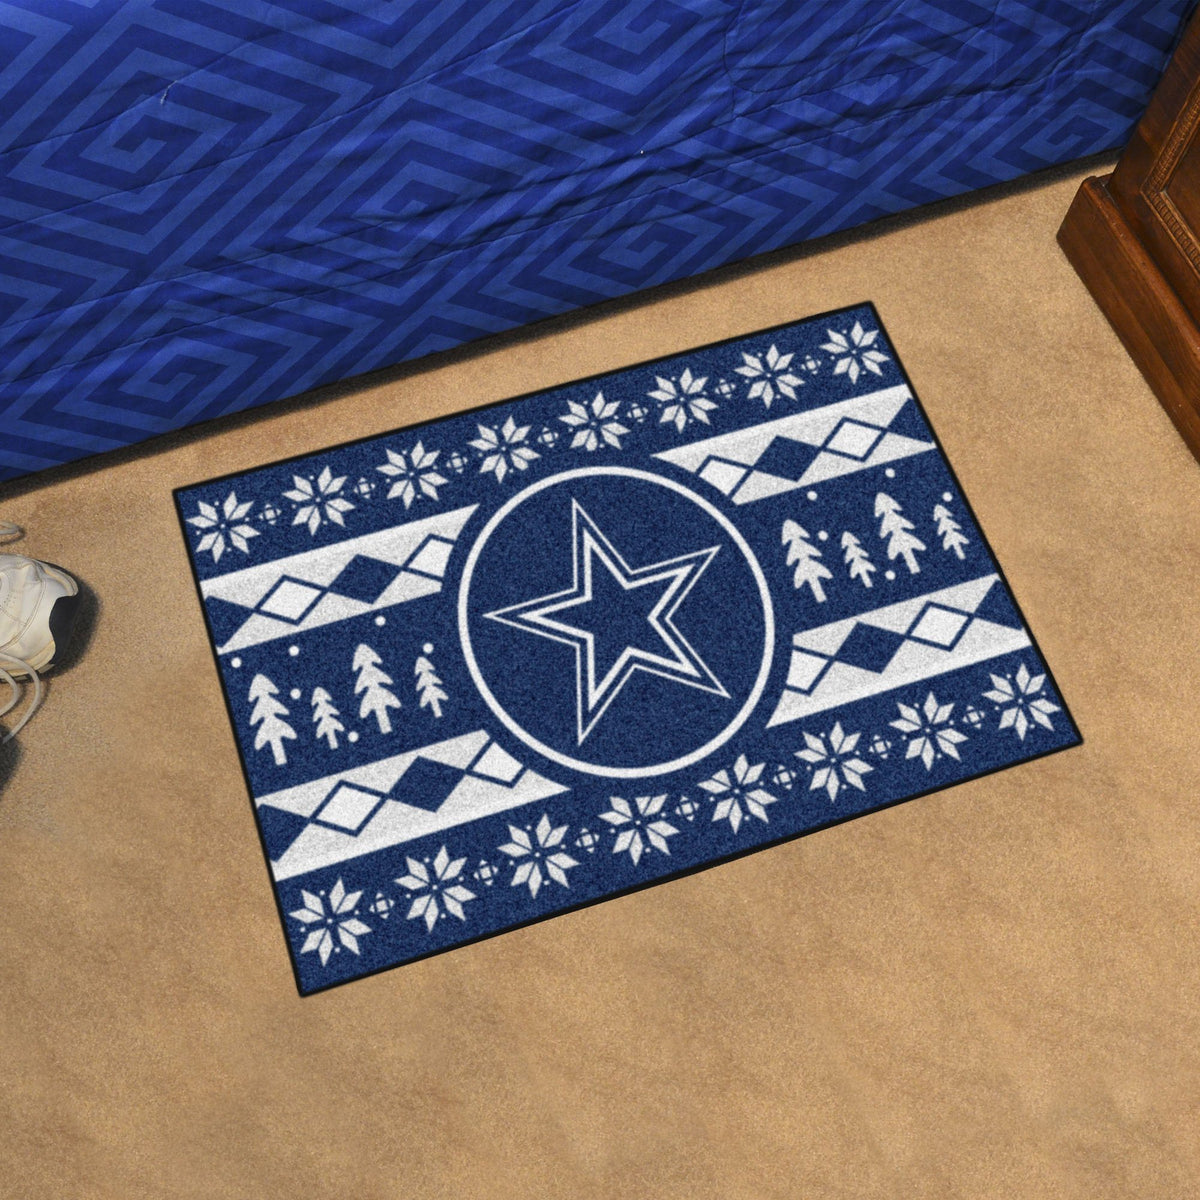 "NFL - Holiday Sweater Starter Mat, 19"" x 30"" NFL Mats, Rectangular Mats, Holiday Sweater Starter Mat, NFL, Home Fan Mats Dallas Cowboys"